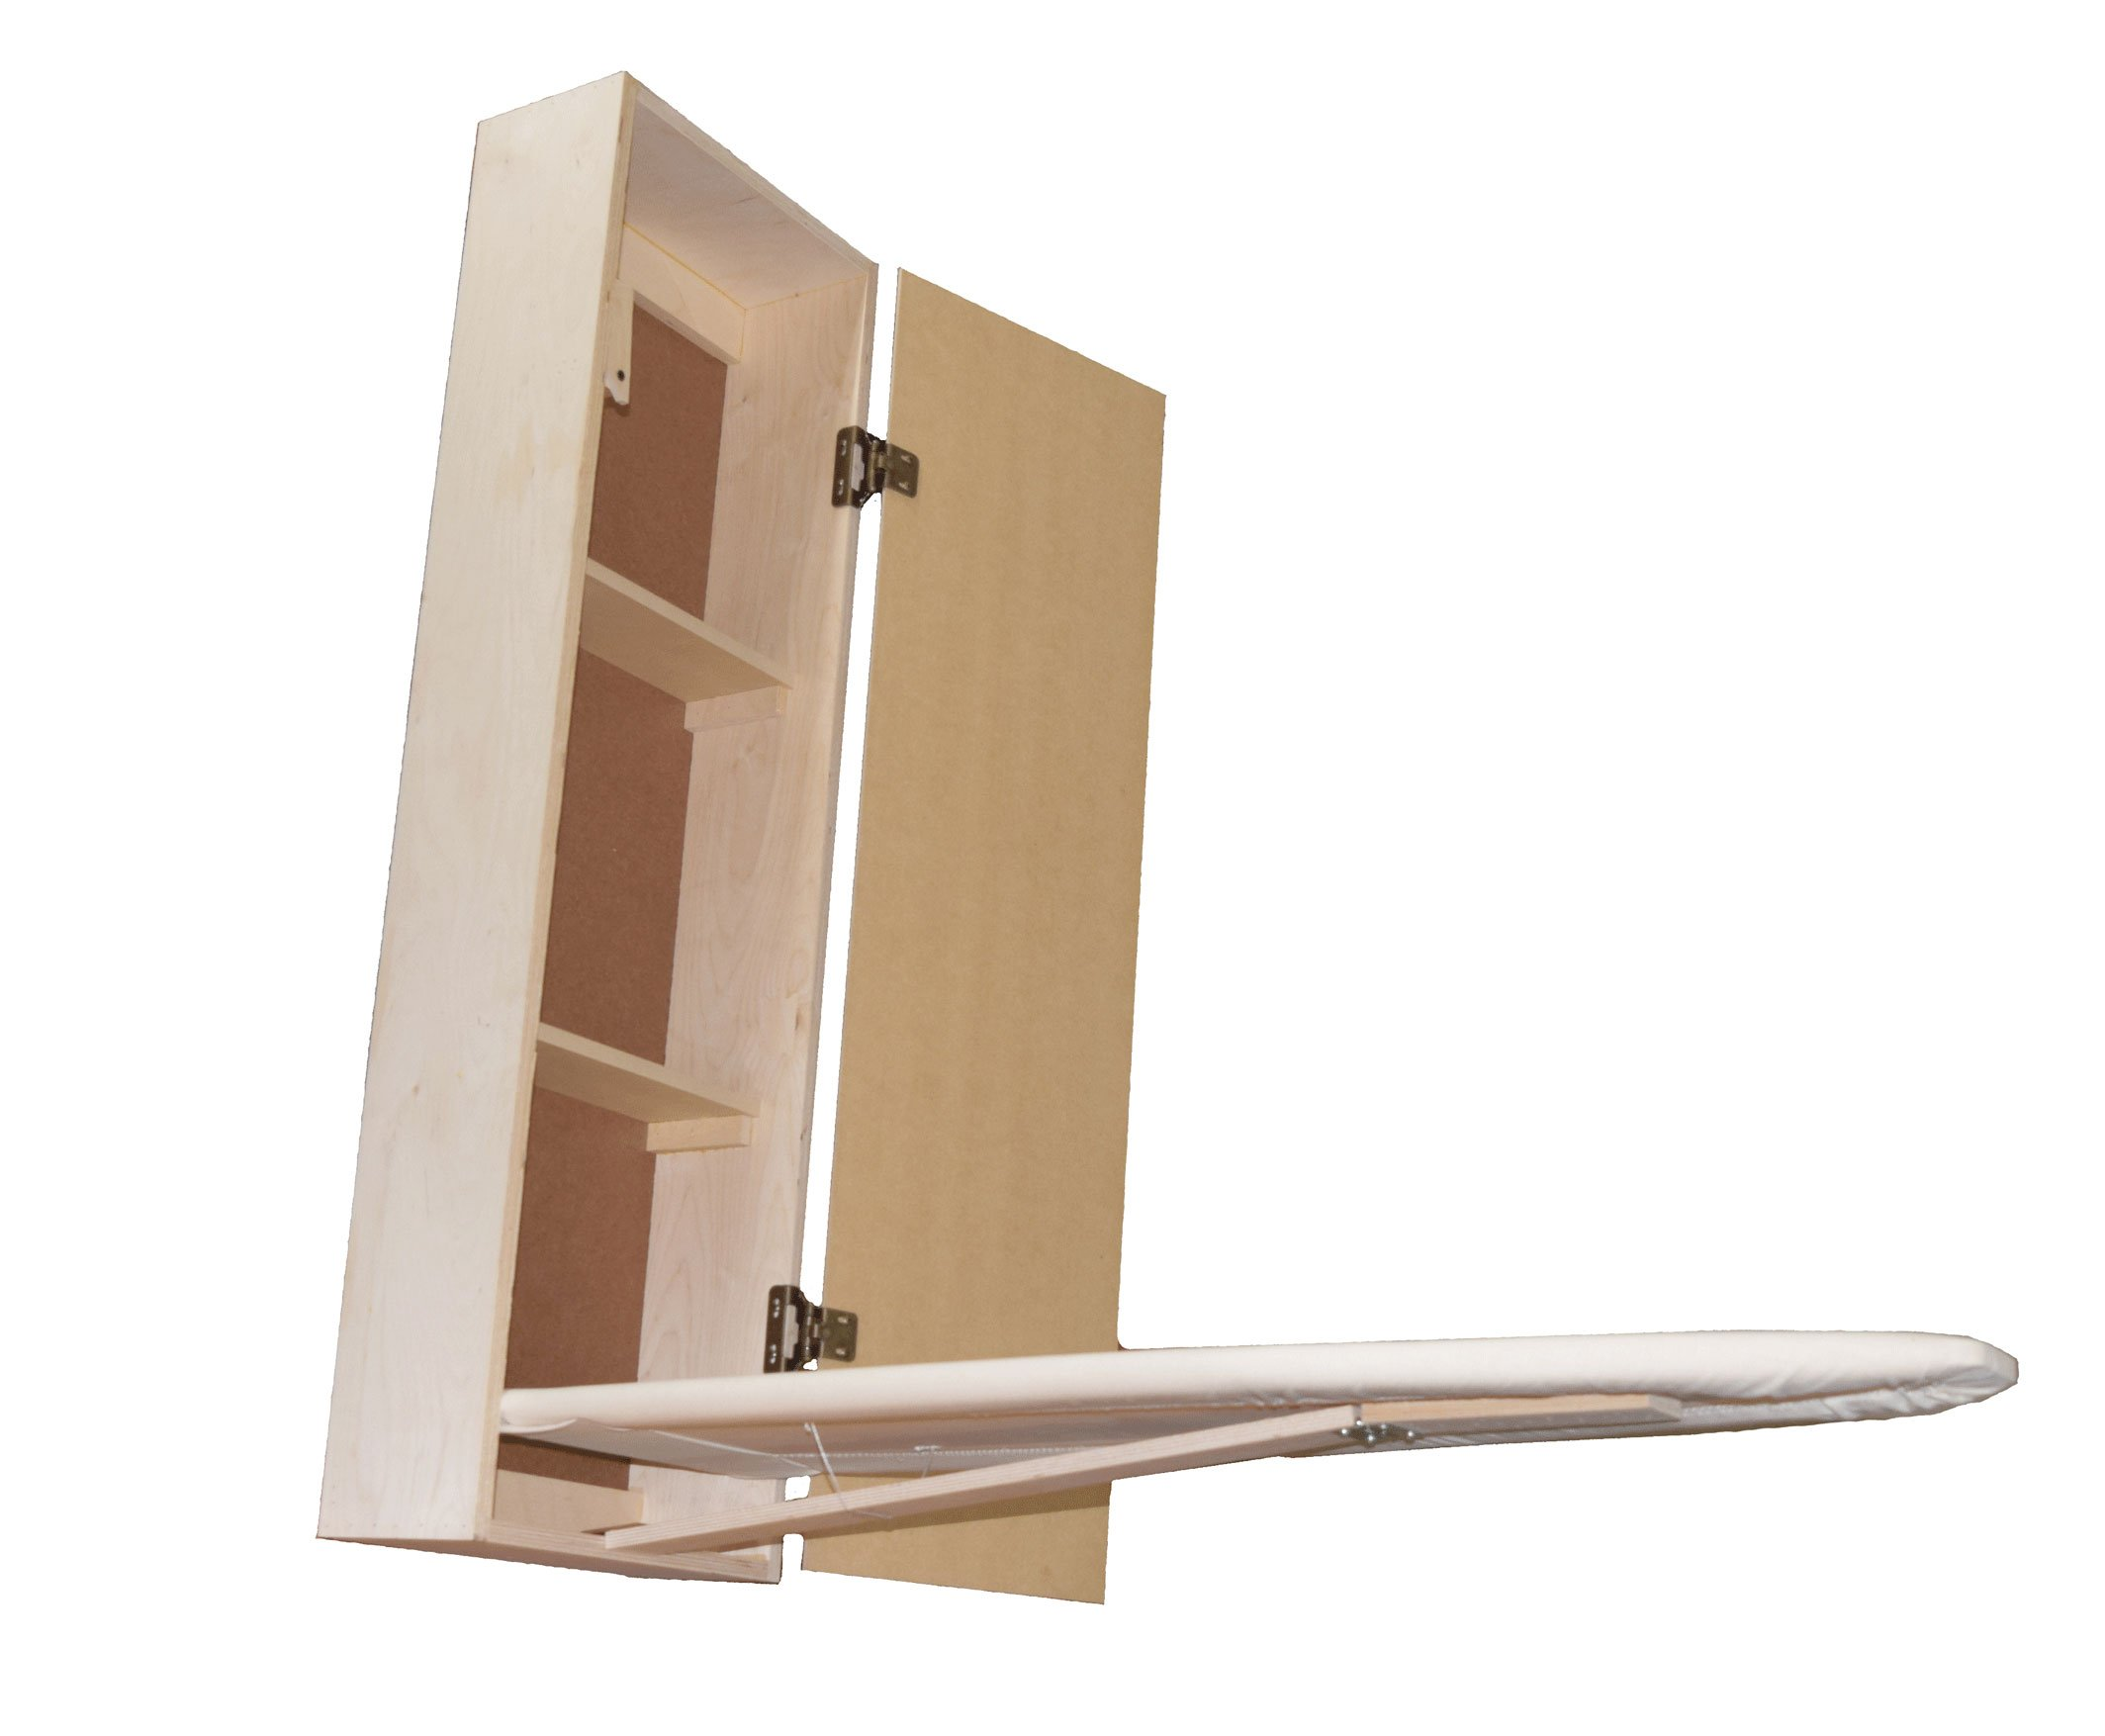 Built-in Ironing Board Cabinet Raw Wood, Iron Storage, Hide Away, Stow, Fold Away, with Routed Door by USAFlagCases (Image #3)